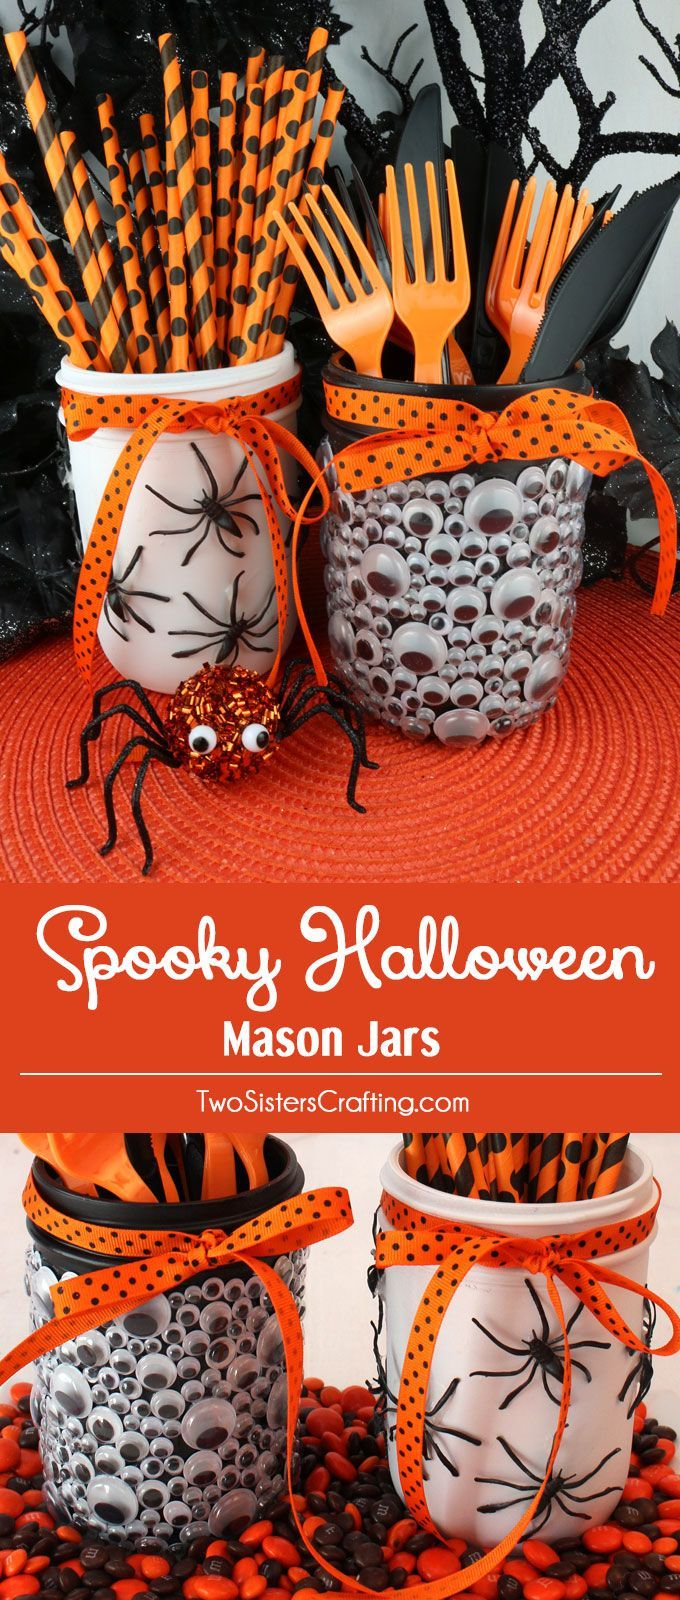 Vintage halloween paper decorations - Spooky Halloween Mason Jars